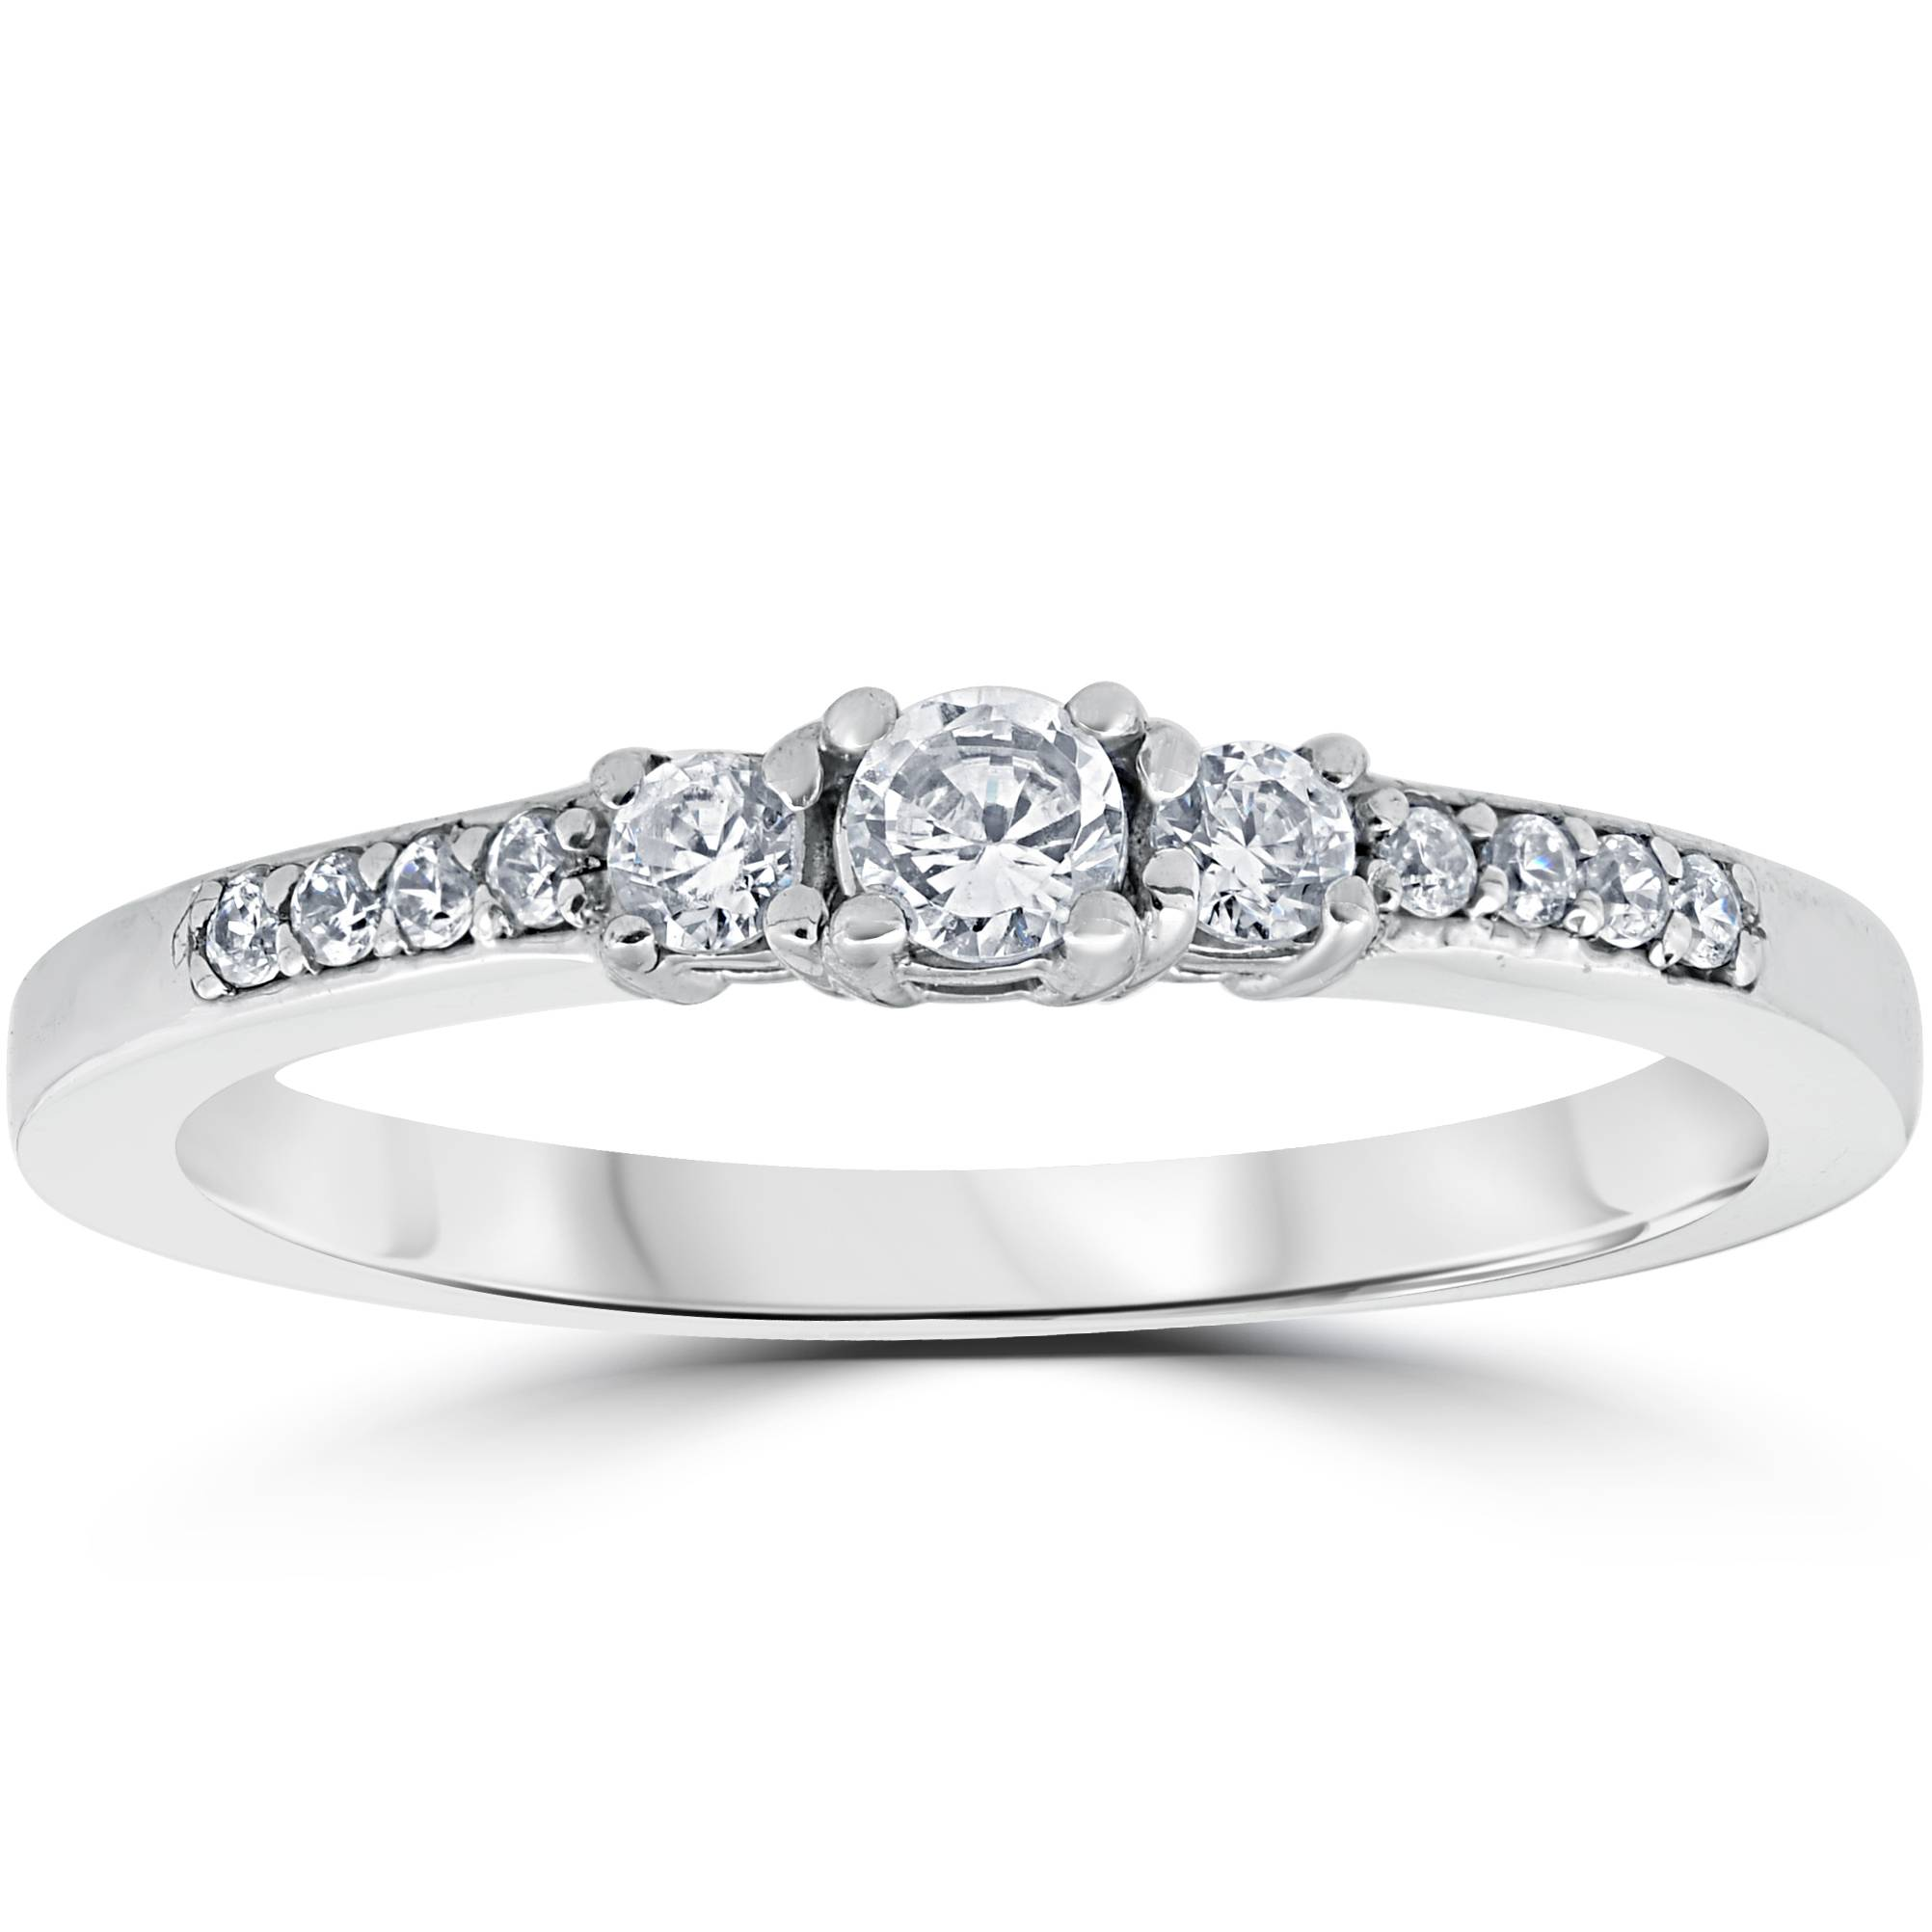 Womens 14ct Three Stone Round Diamond Engagement Ring 14k. Infected Rings. Super Cool Engagement Rings. Palladium Rings. Clamp Rings. Husband And Wife Wedding Rings. Sparkle Engagement Rings. Loin Rings. Meaningful Engagement Engagement Rings